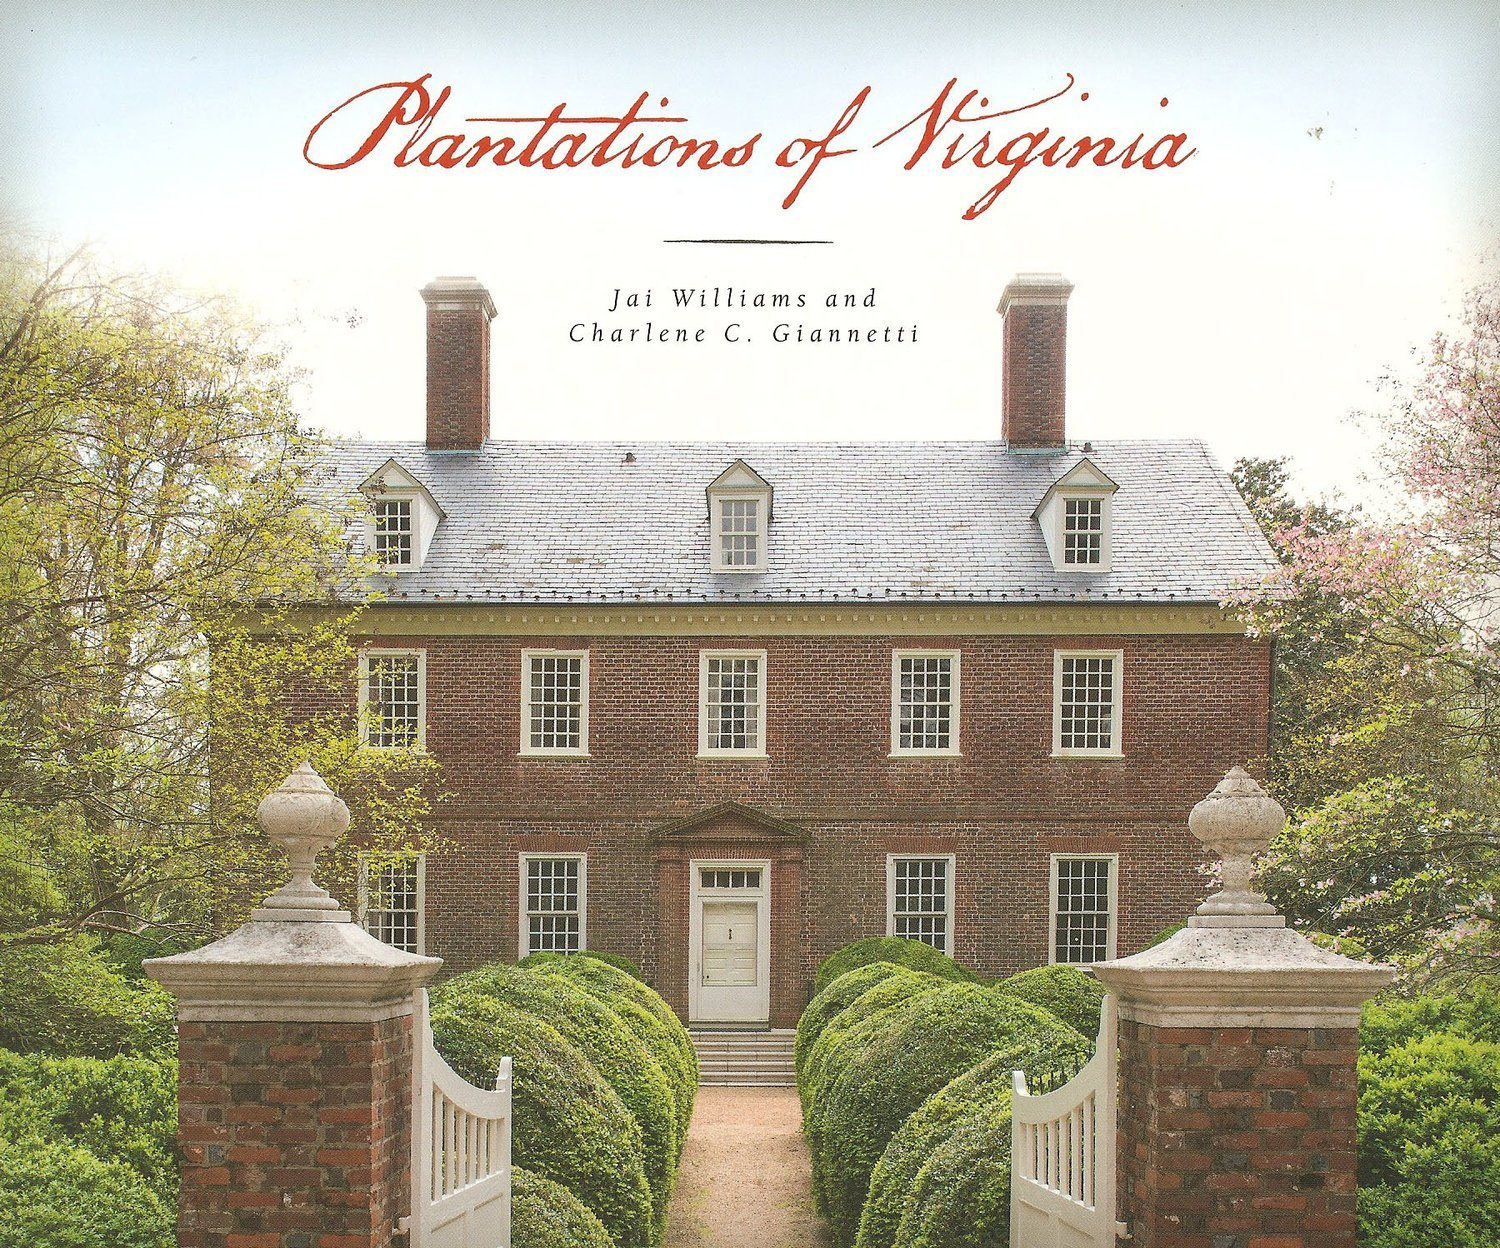 Plantations of Virginia - The Shops at Mount Vernon - The Shops at Mount Vernon